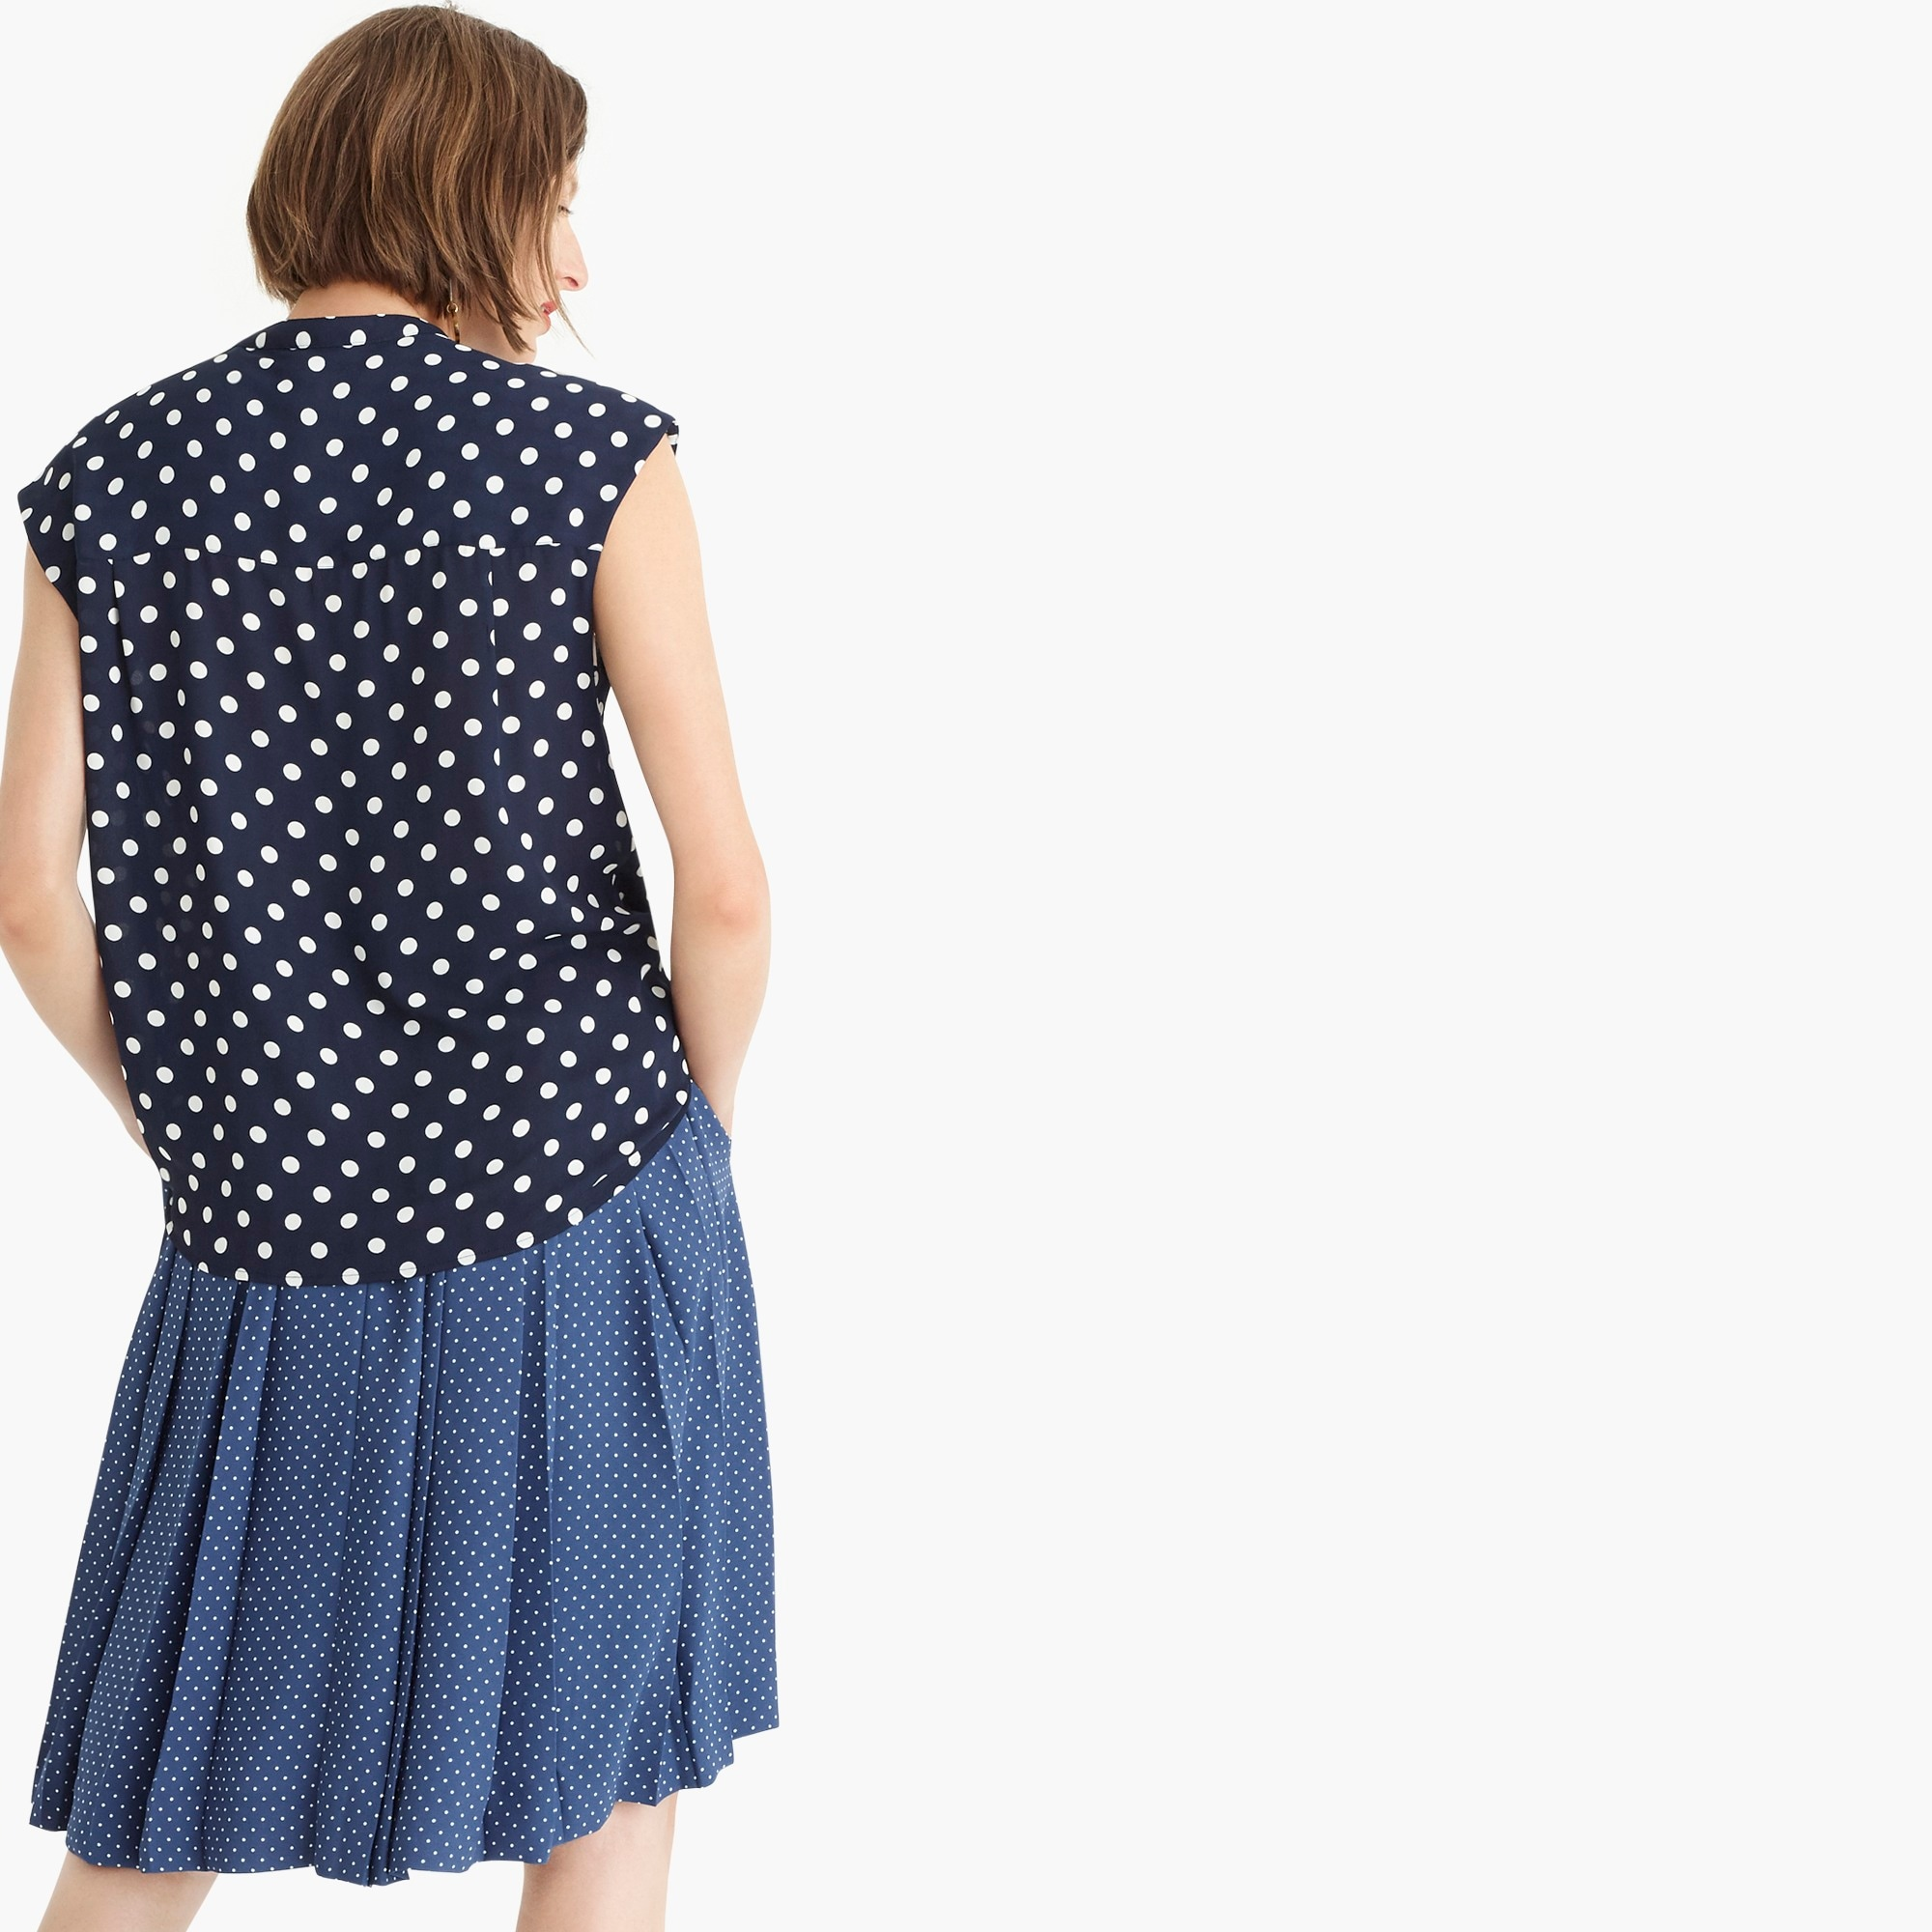 Petite drapey cap-sleeve top in polka dot